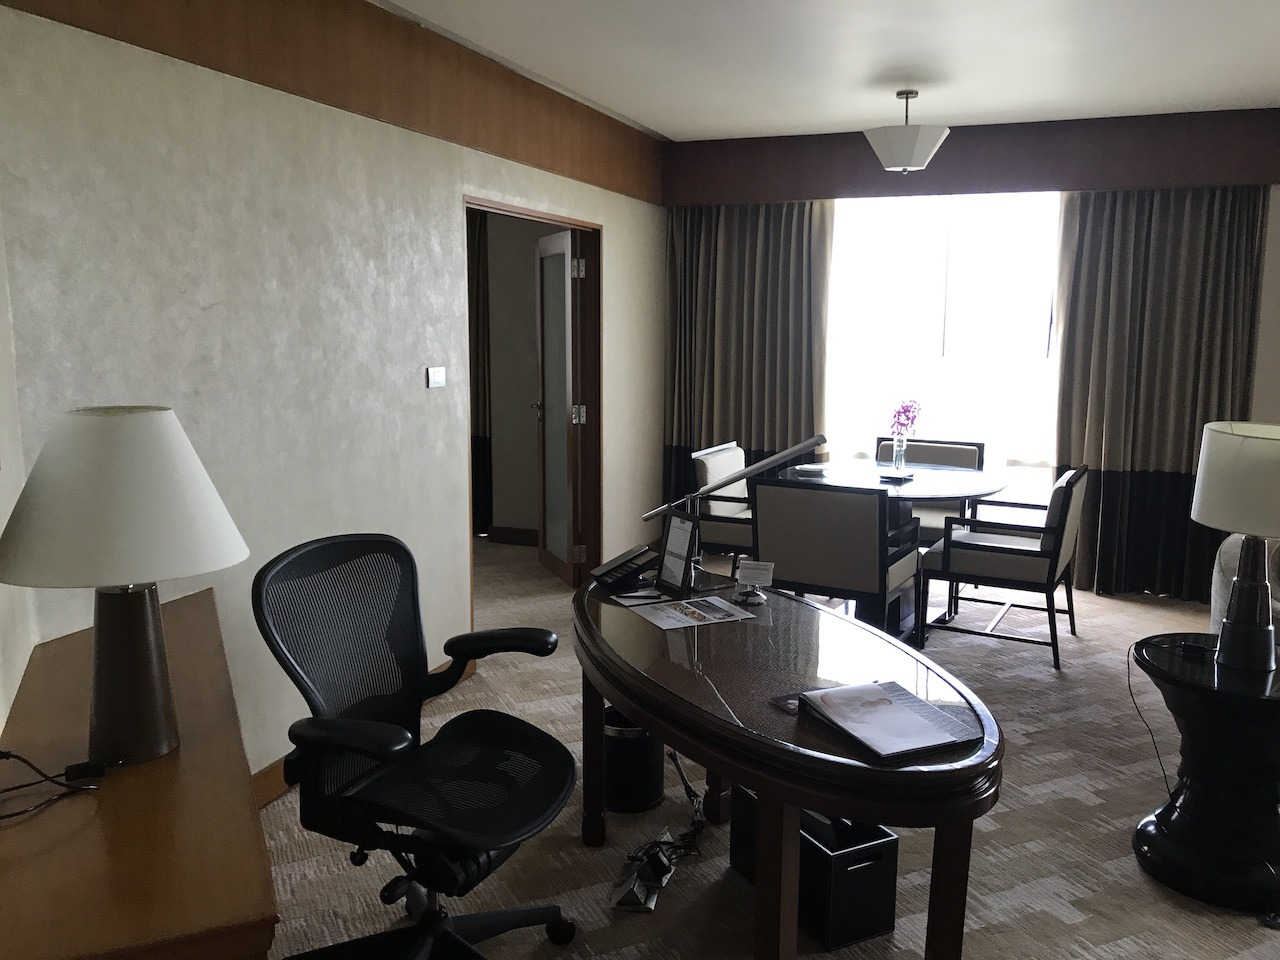 Suite desk and work area